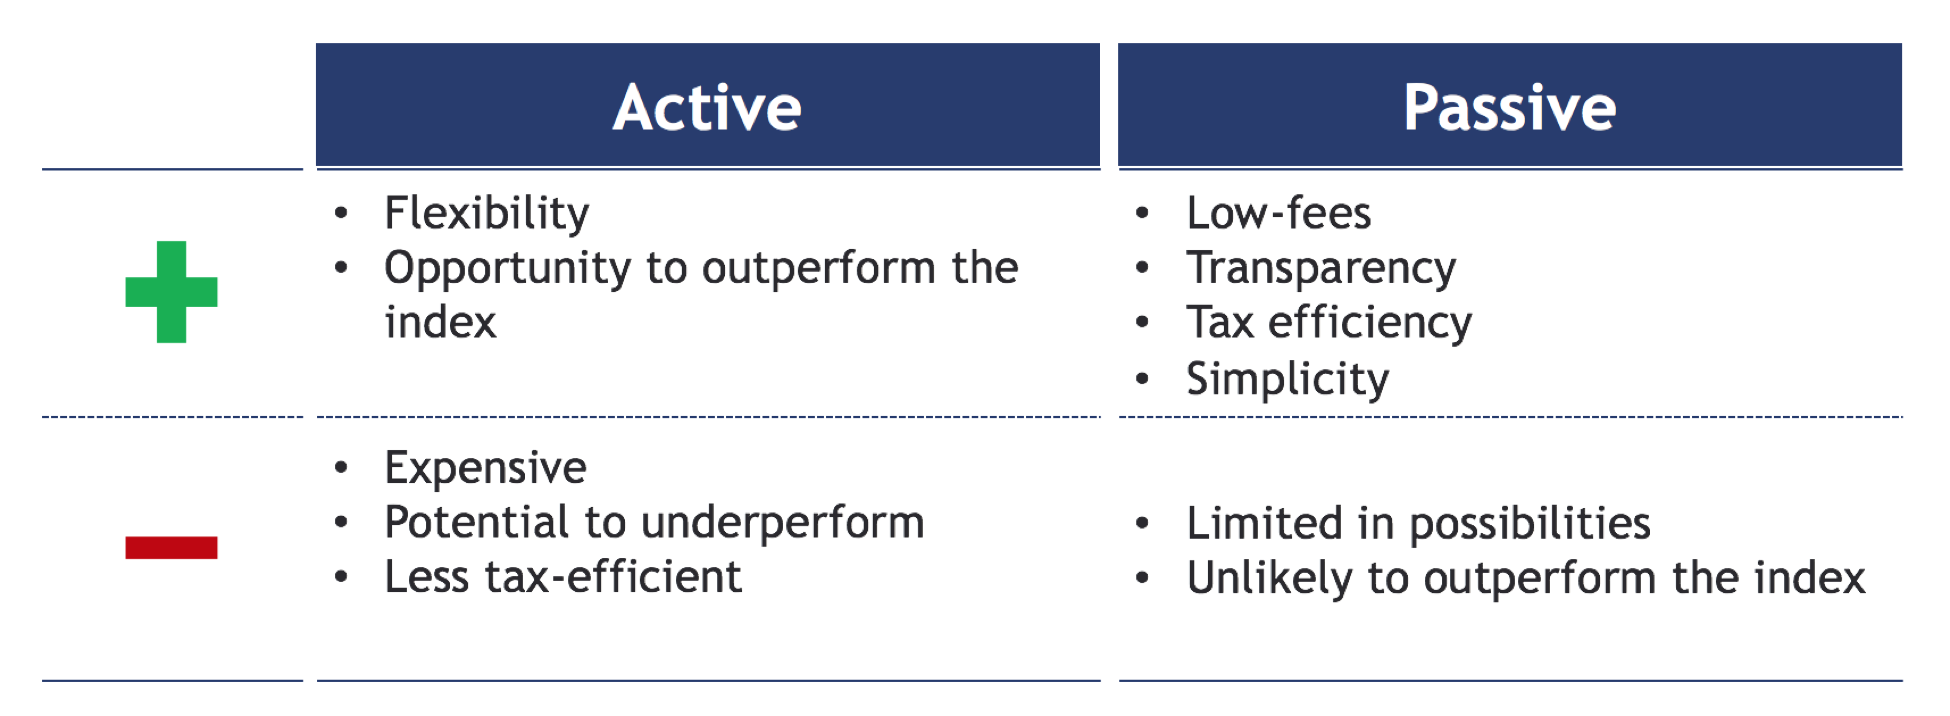 active and passive investing definition